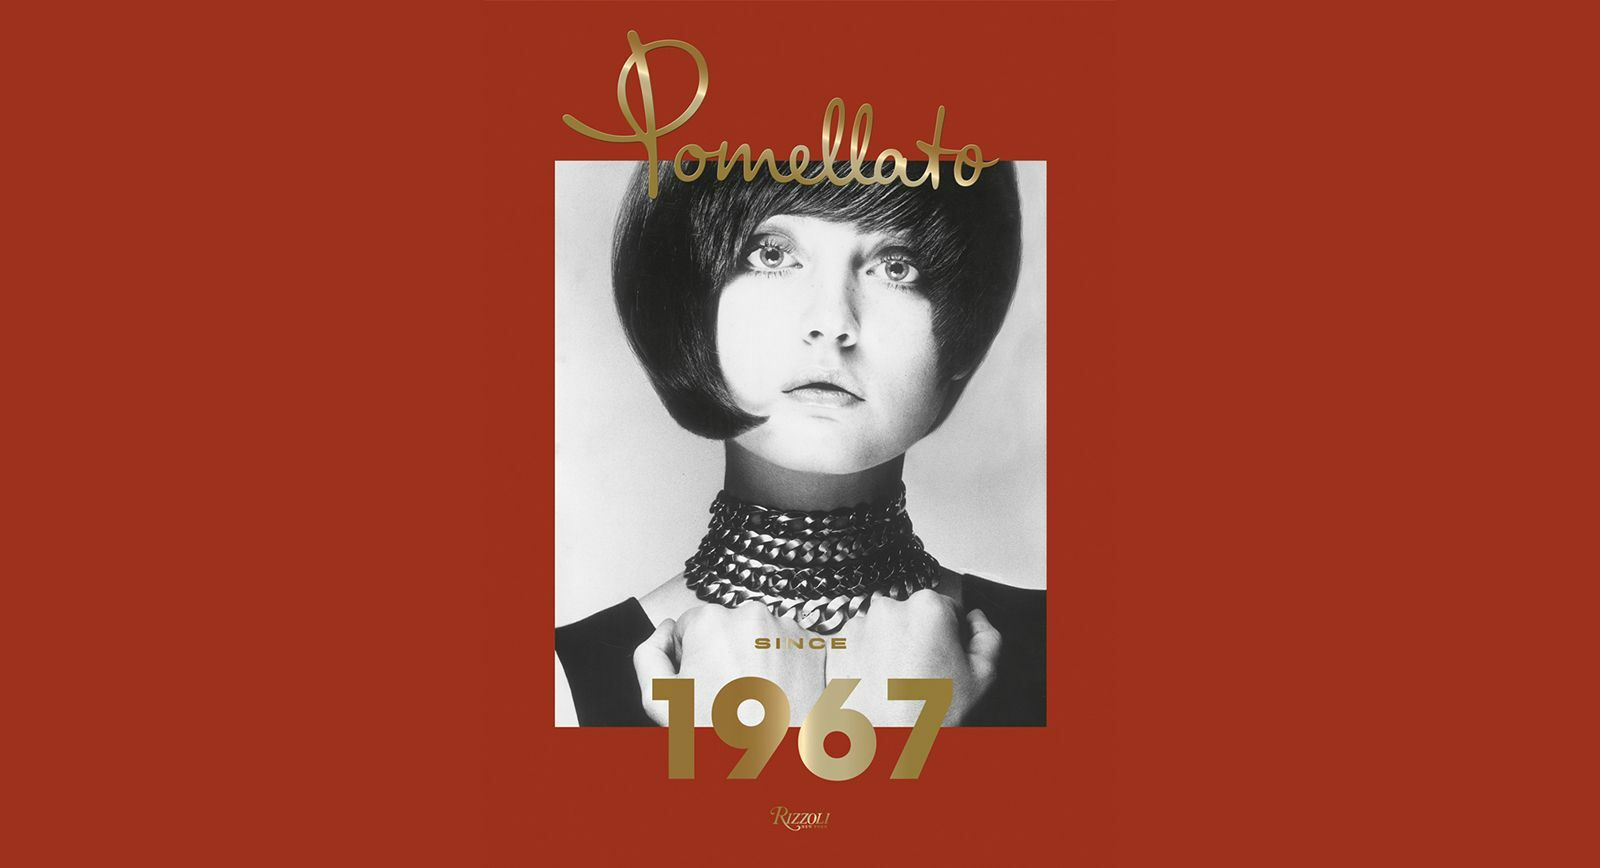 'Pomellato since 1967' 50th Anniversary Book Review